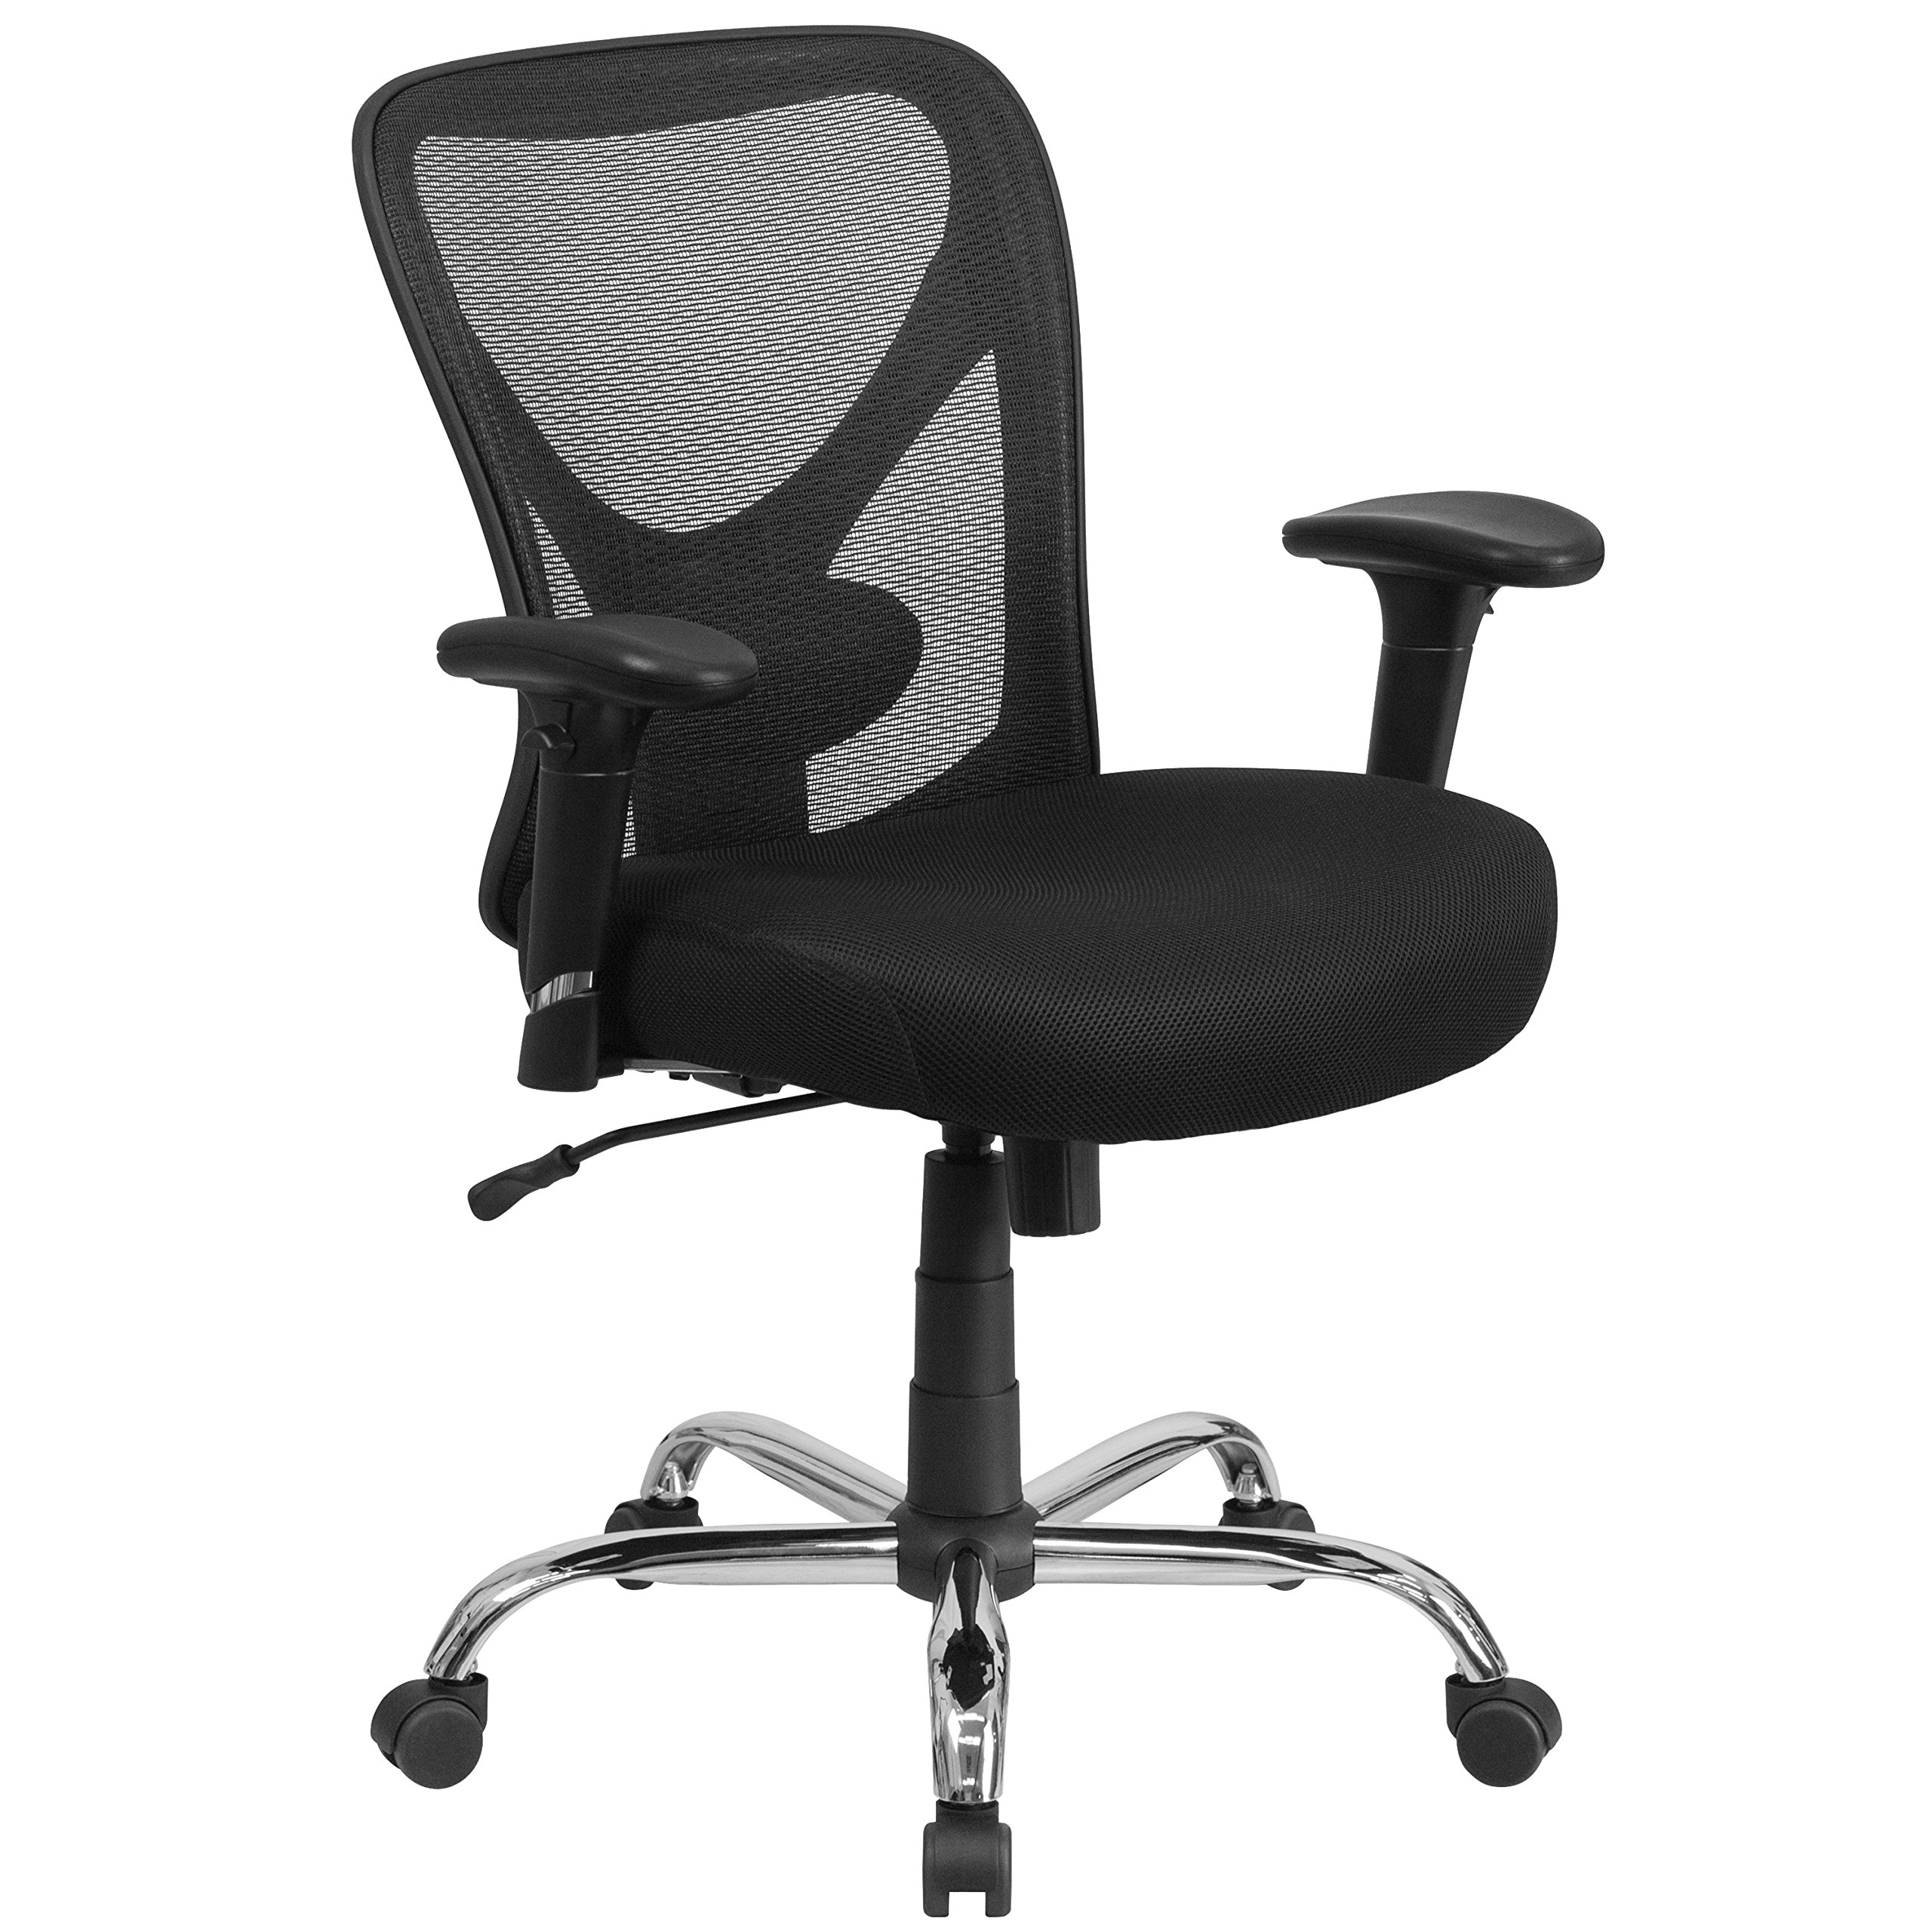 Flash Furniture HERCULES Series Big & Tall 400 lb. Rated Black Mesh Swivel Task Chair with Height Adjustable Back and Arms by Flash Furniture